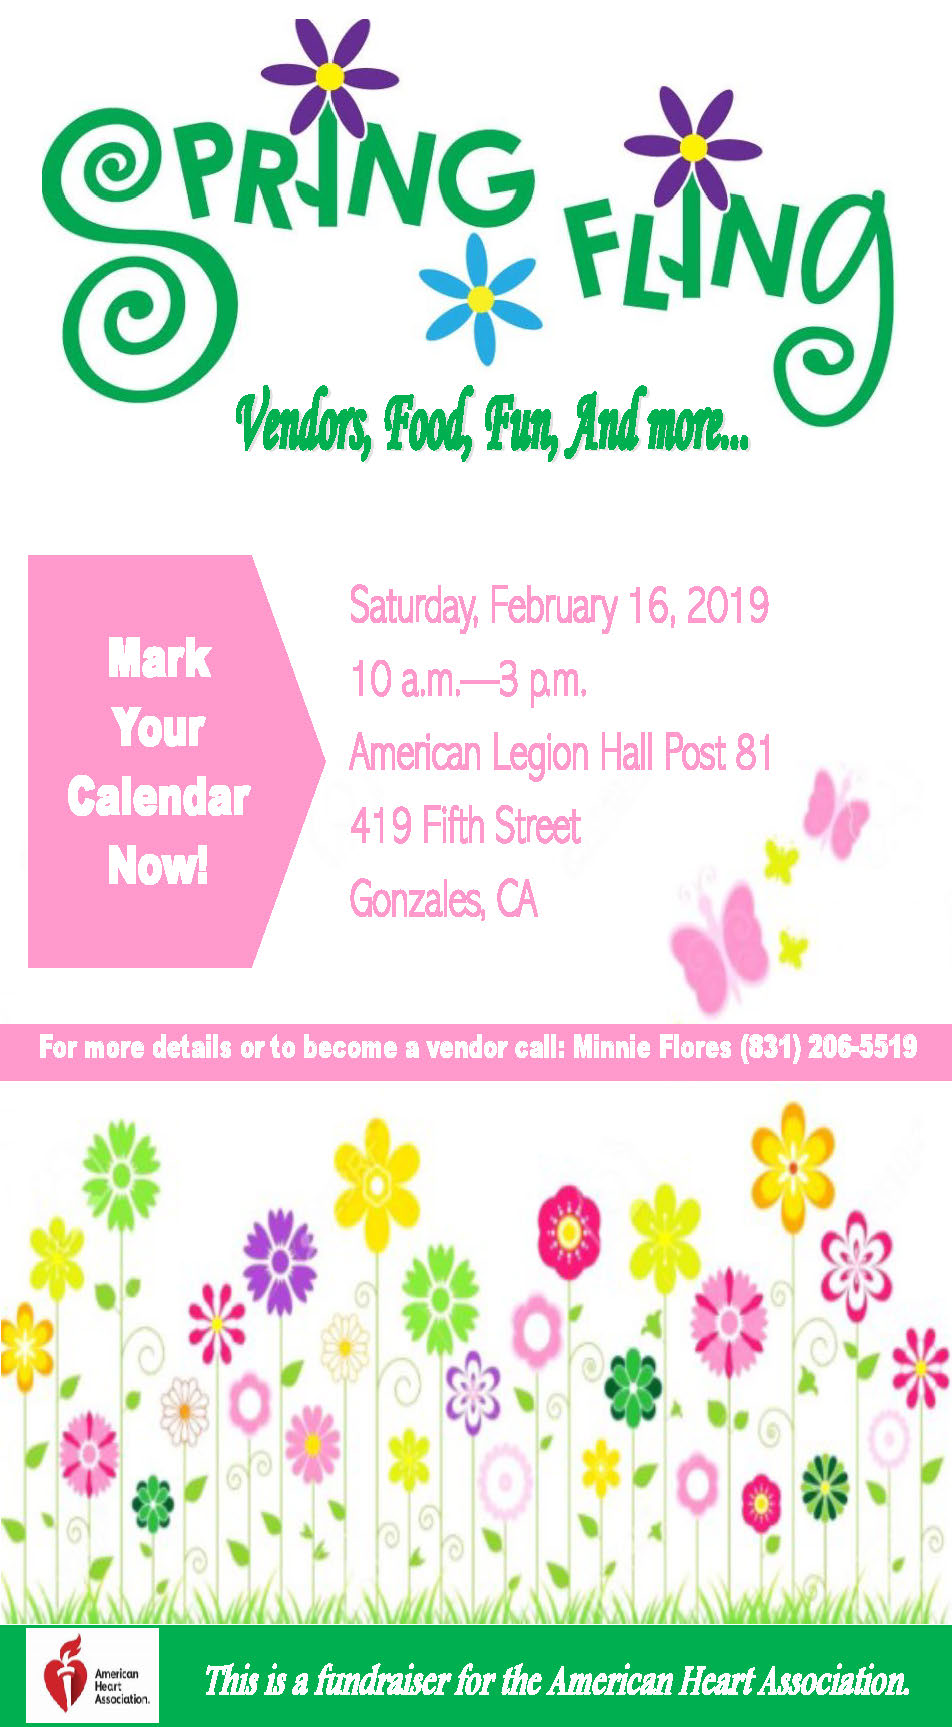 Spring Fling event on Feb 16, 10 am - 3 pm